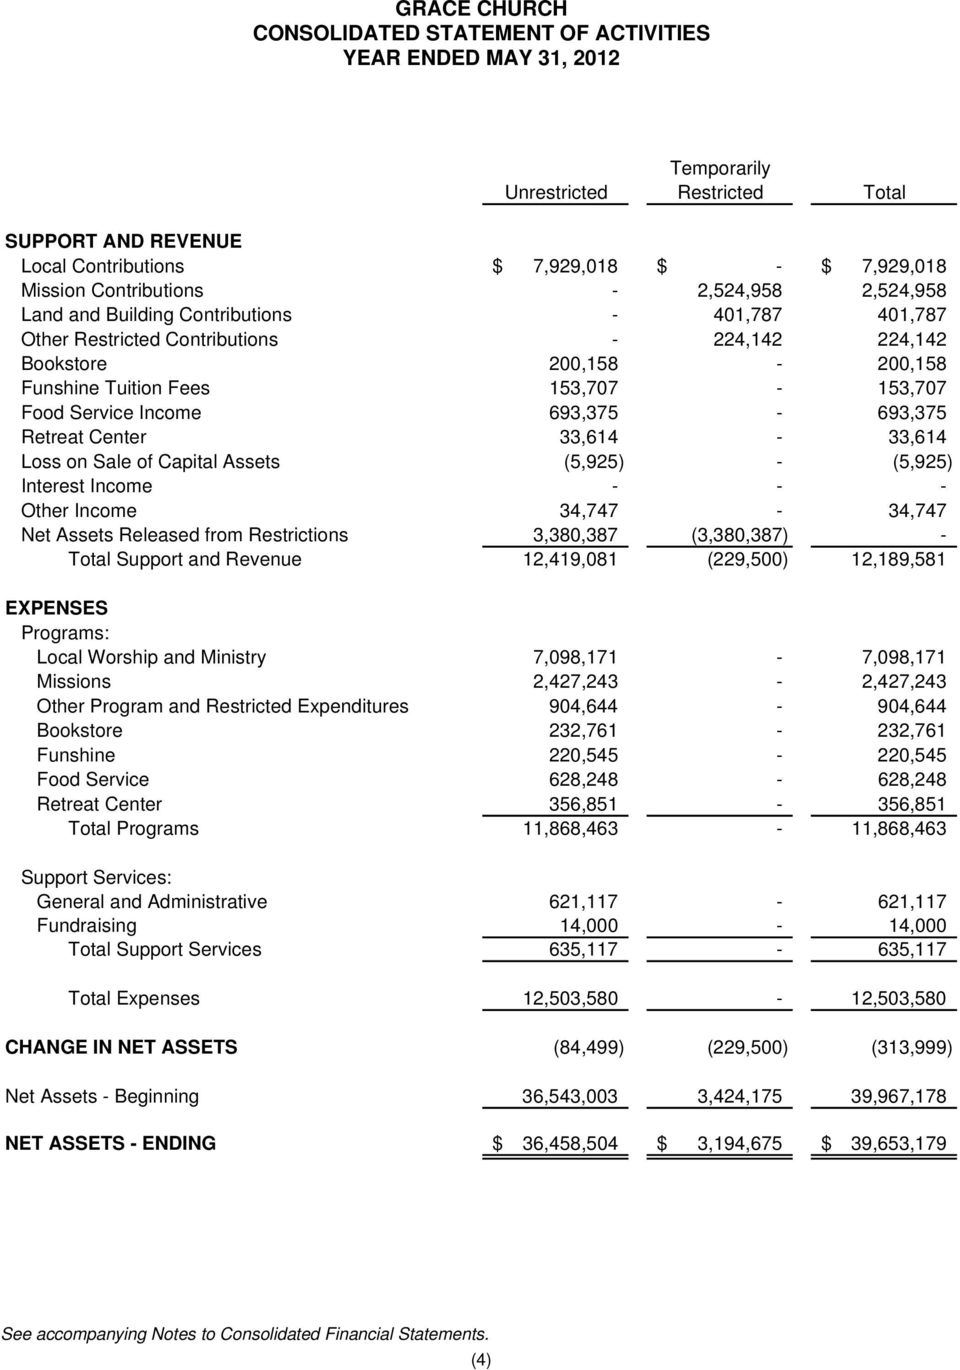 Income 693,375-693,375 Retreat Center 33,614-33,614 Loss on Sale of Capital Assets (5,925) - (5,925) Interest Income - - - Other Income 34,747-34,747 Net Assets Released from Restrictions 3,380,387